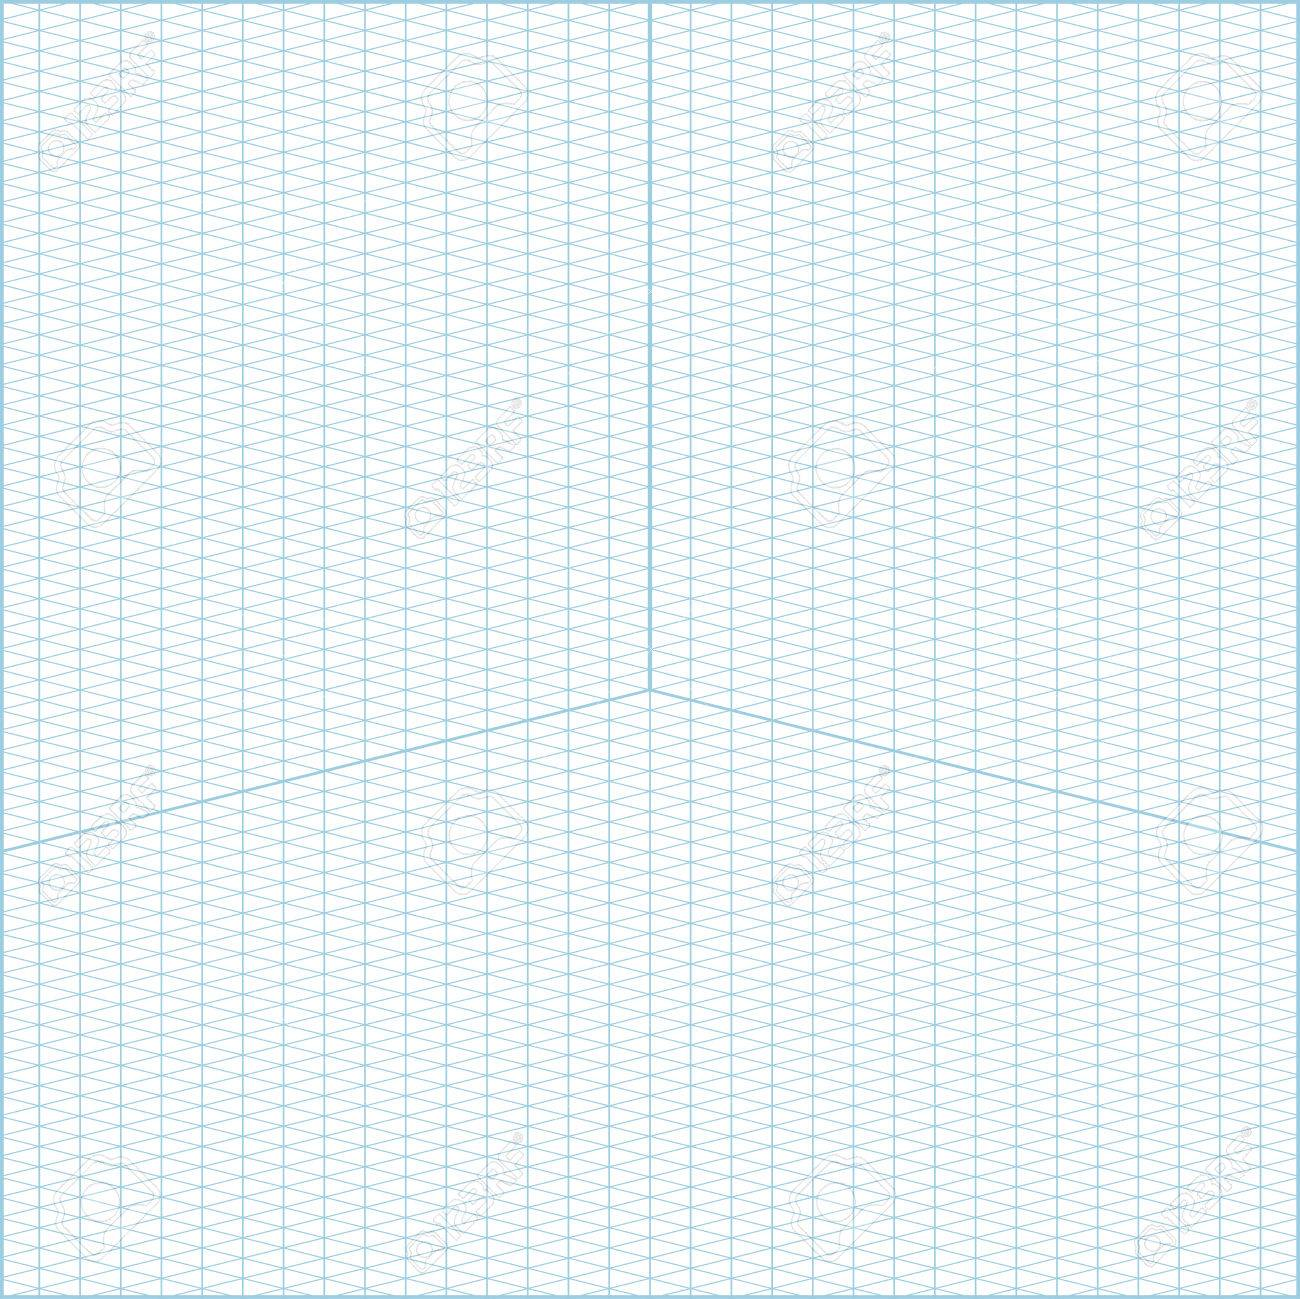 Vector Blue Wide Angle Isometric Grid Graph Paper Square Background With  Axes Stock Vector   81564069